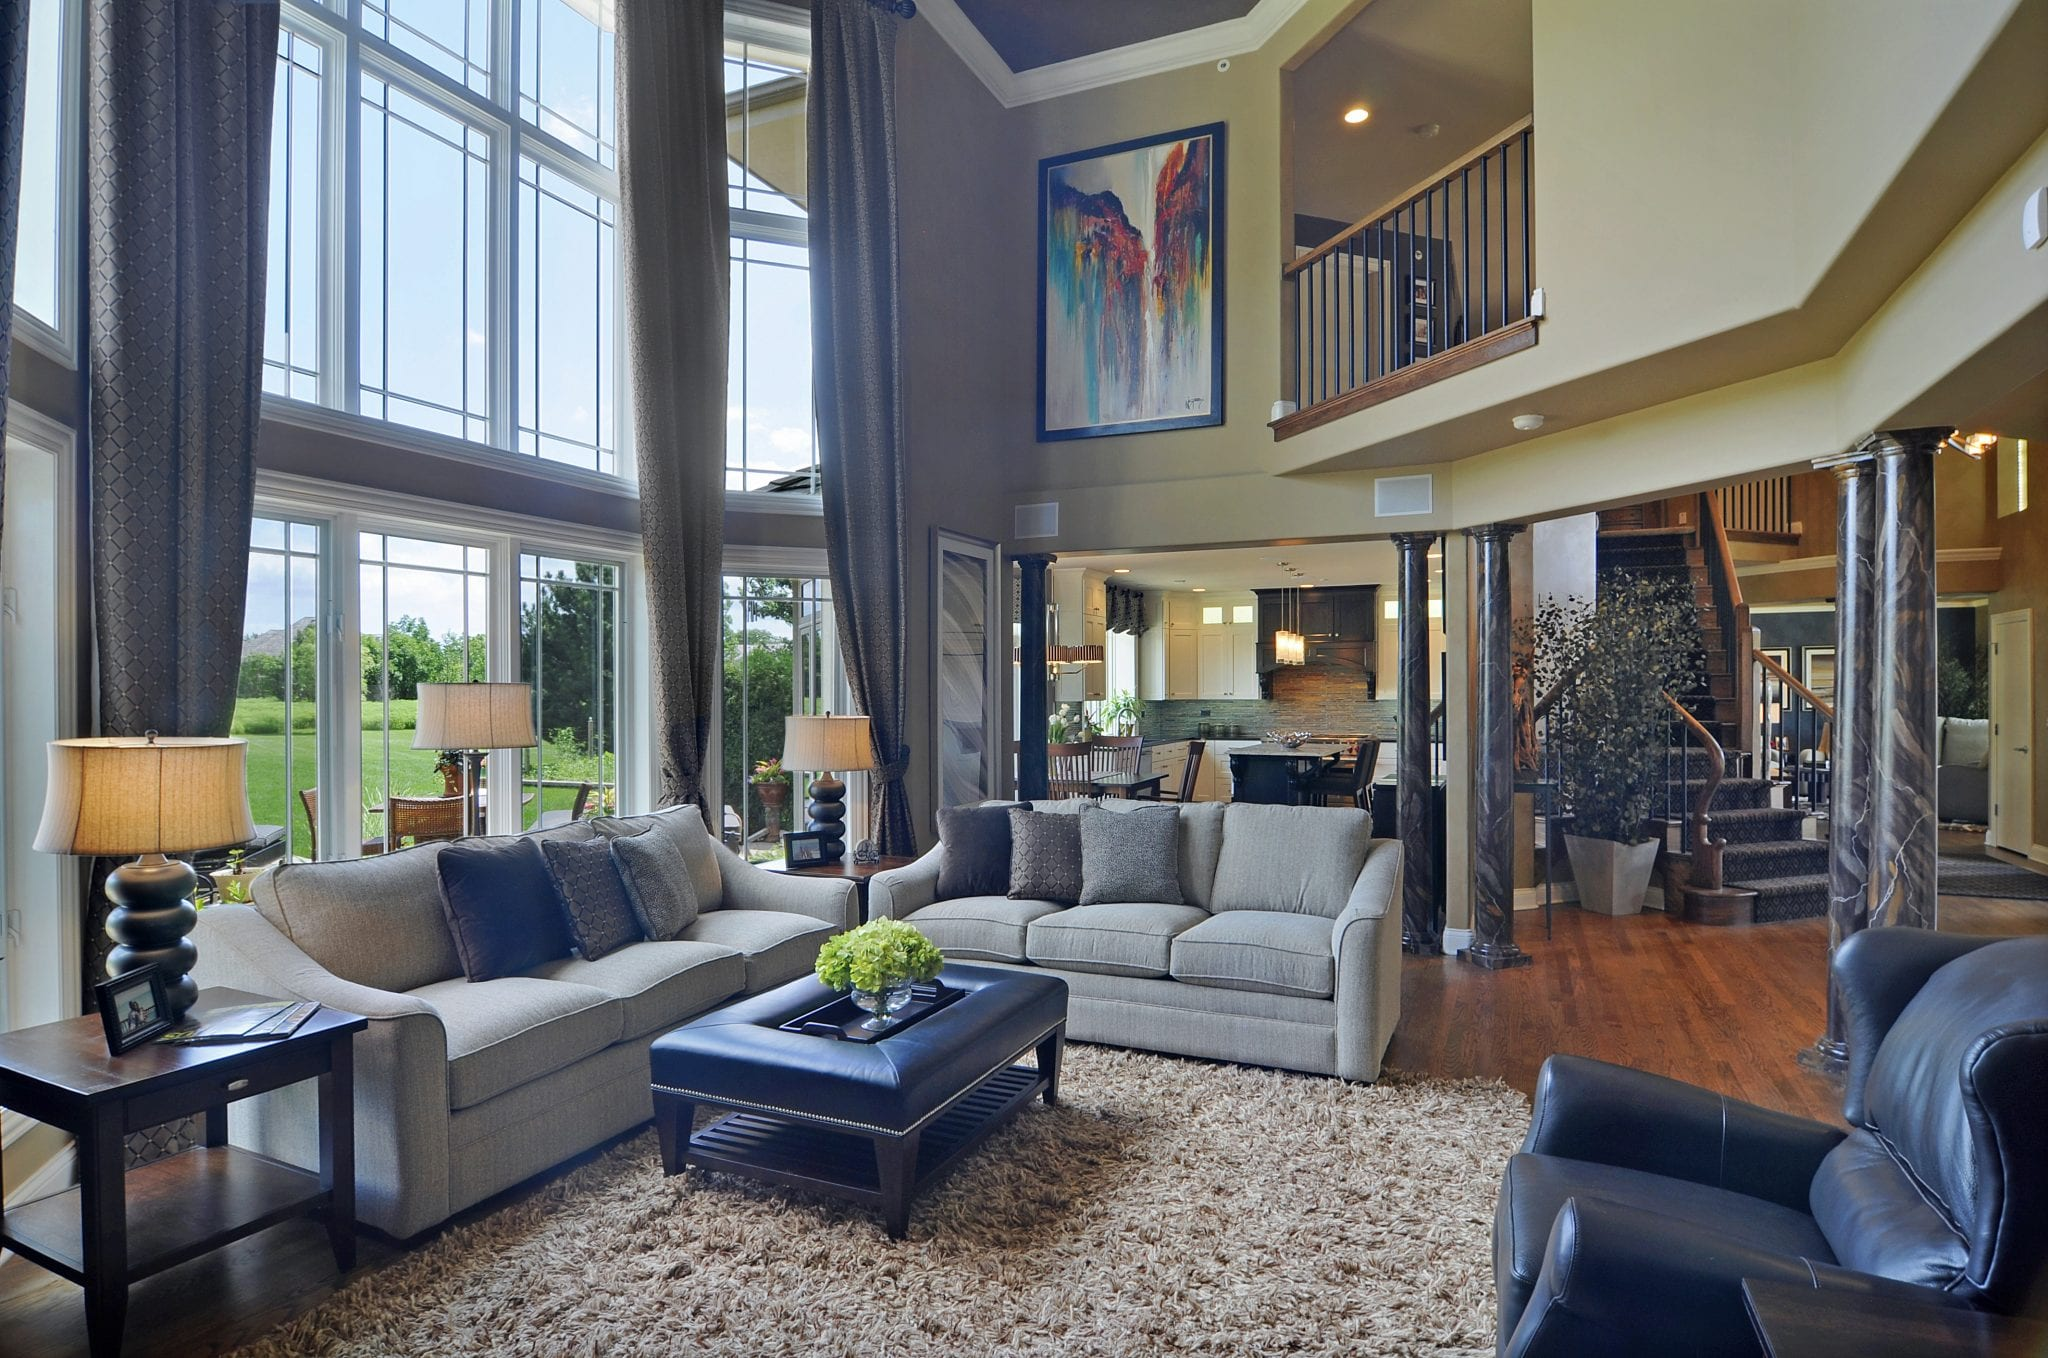 Executive Interior Design and Build - Barrington, Long Grove, Crystal Lake Wilmette, Lake Forest